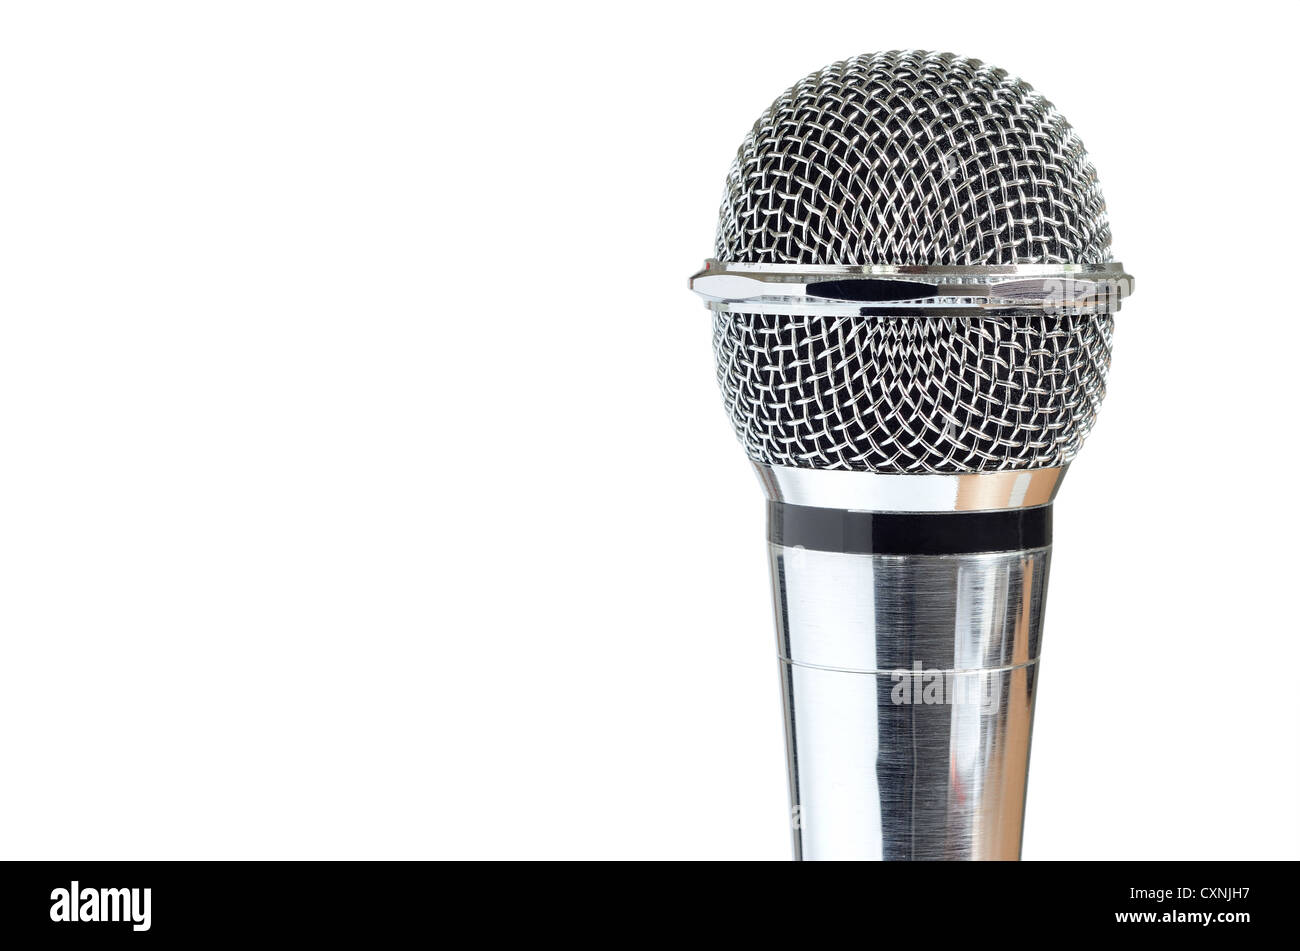 Gros plan du microphone vintage isolated over white background Photo Stock